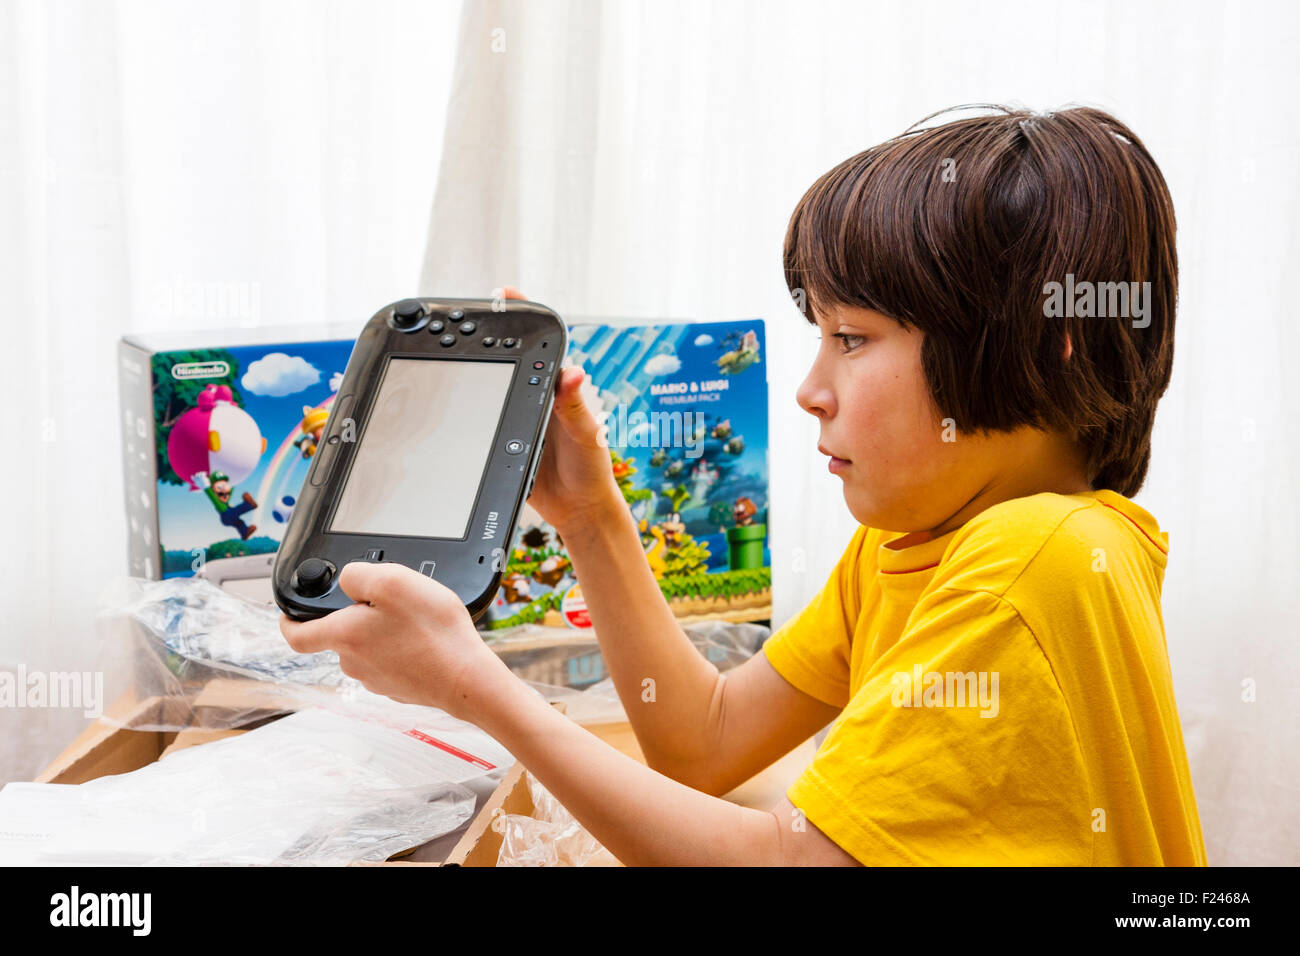 Caucasian child, tween, 10 to 12 years old, holding in both hands Nintendo Wii U gaming console, looking very pleased, - Stock Image